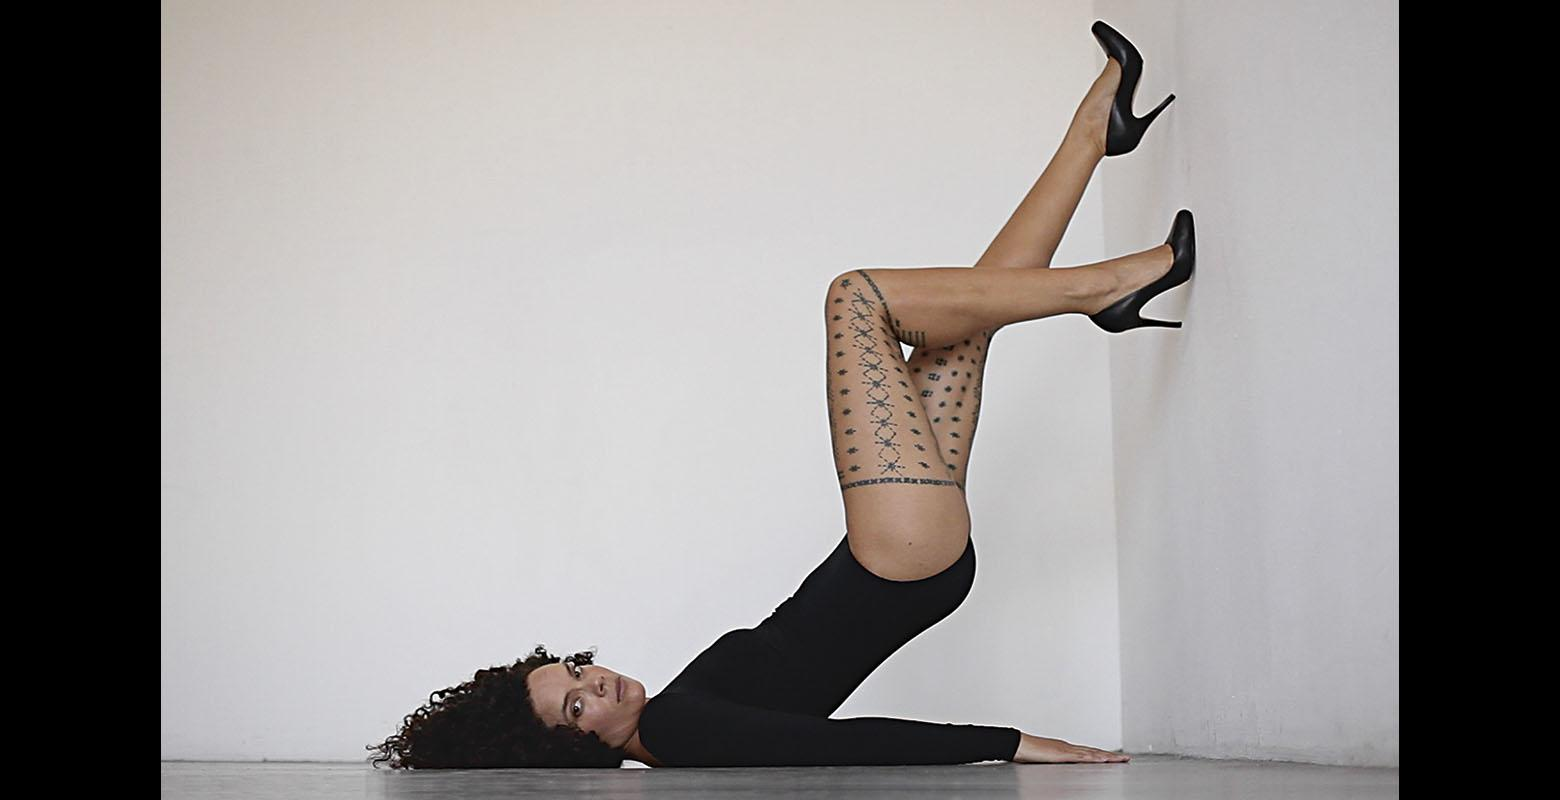 A woman lies on the floor with her legs up against a wall, revealing a detailed tattoo